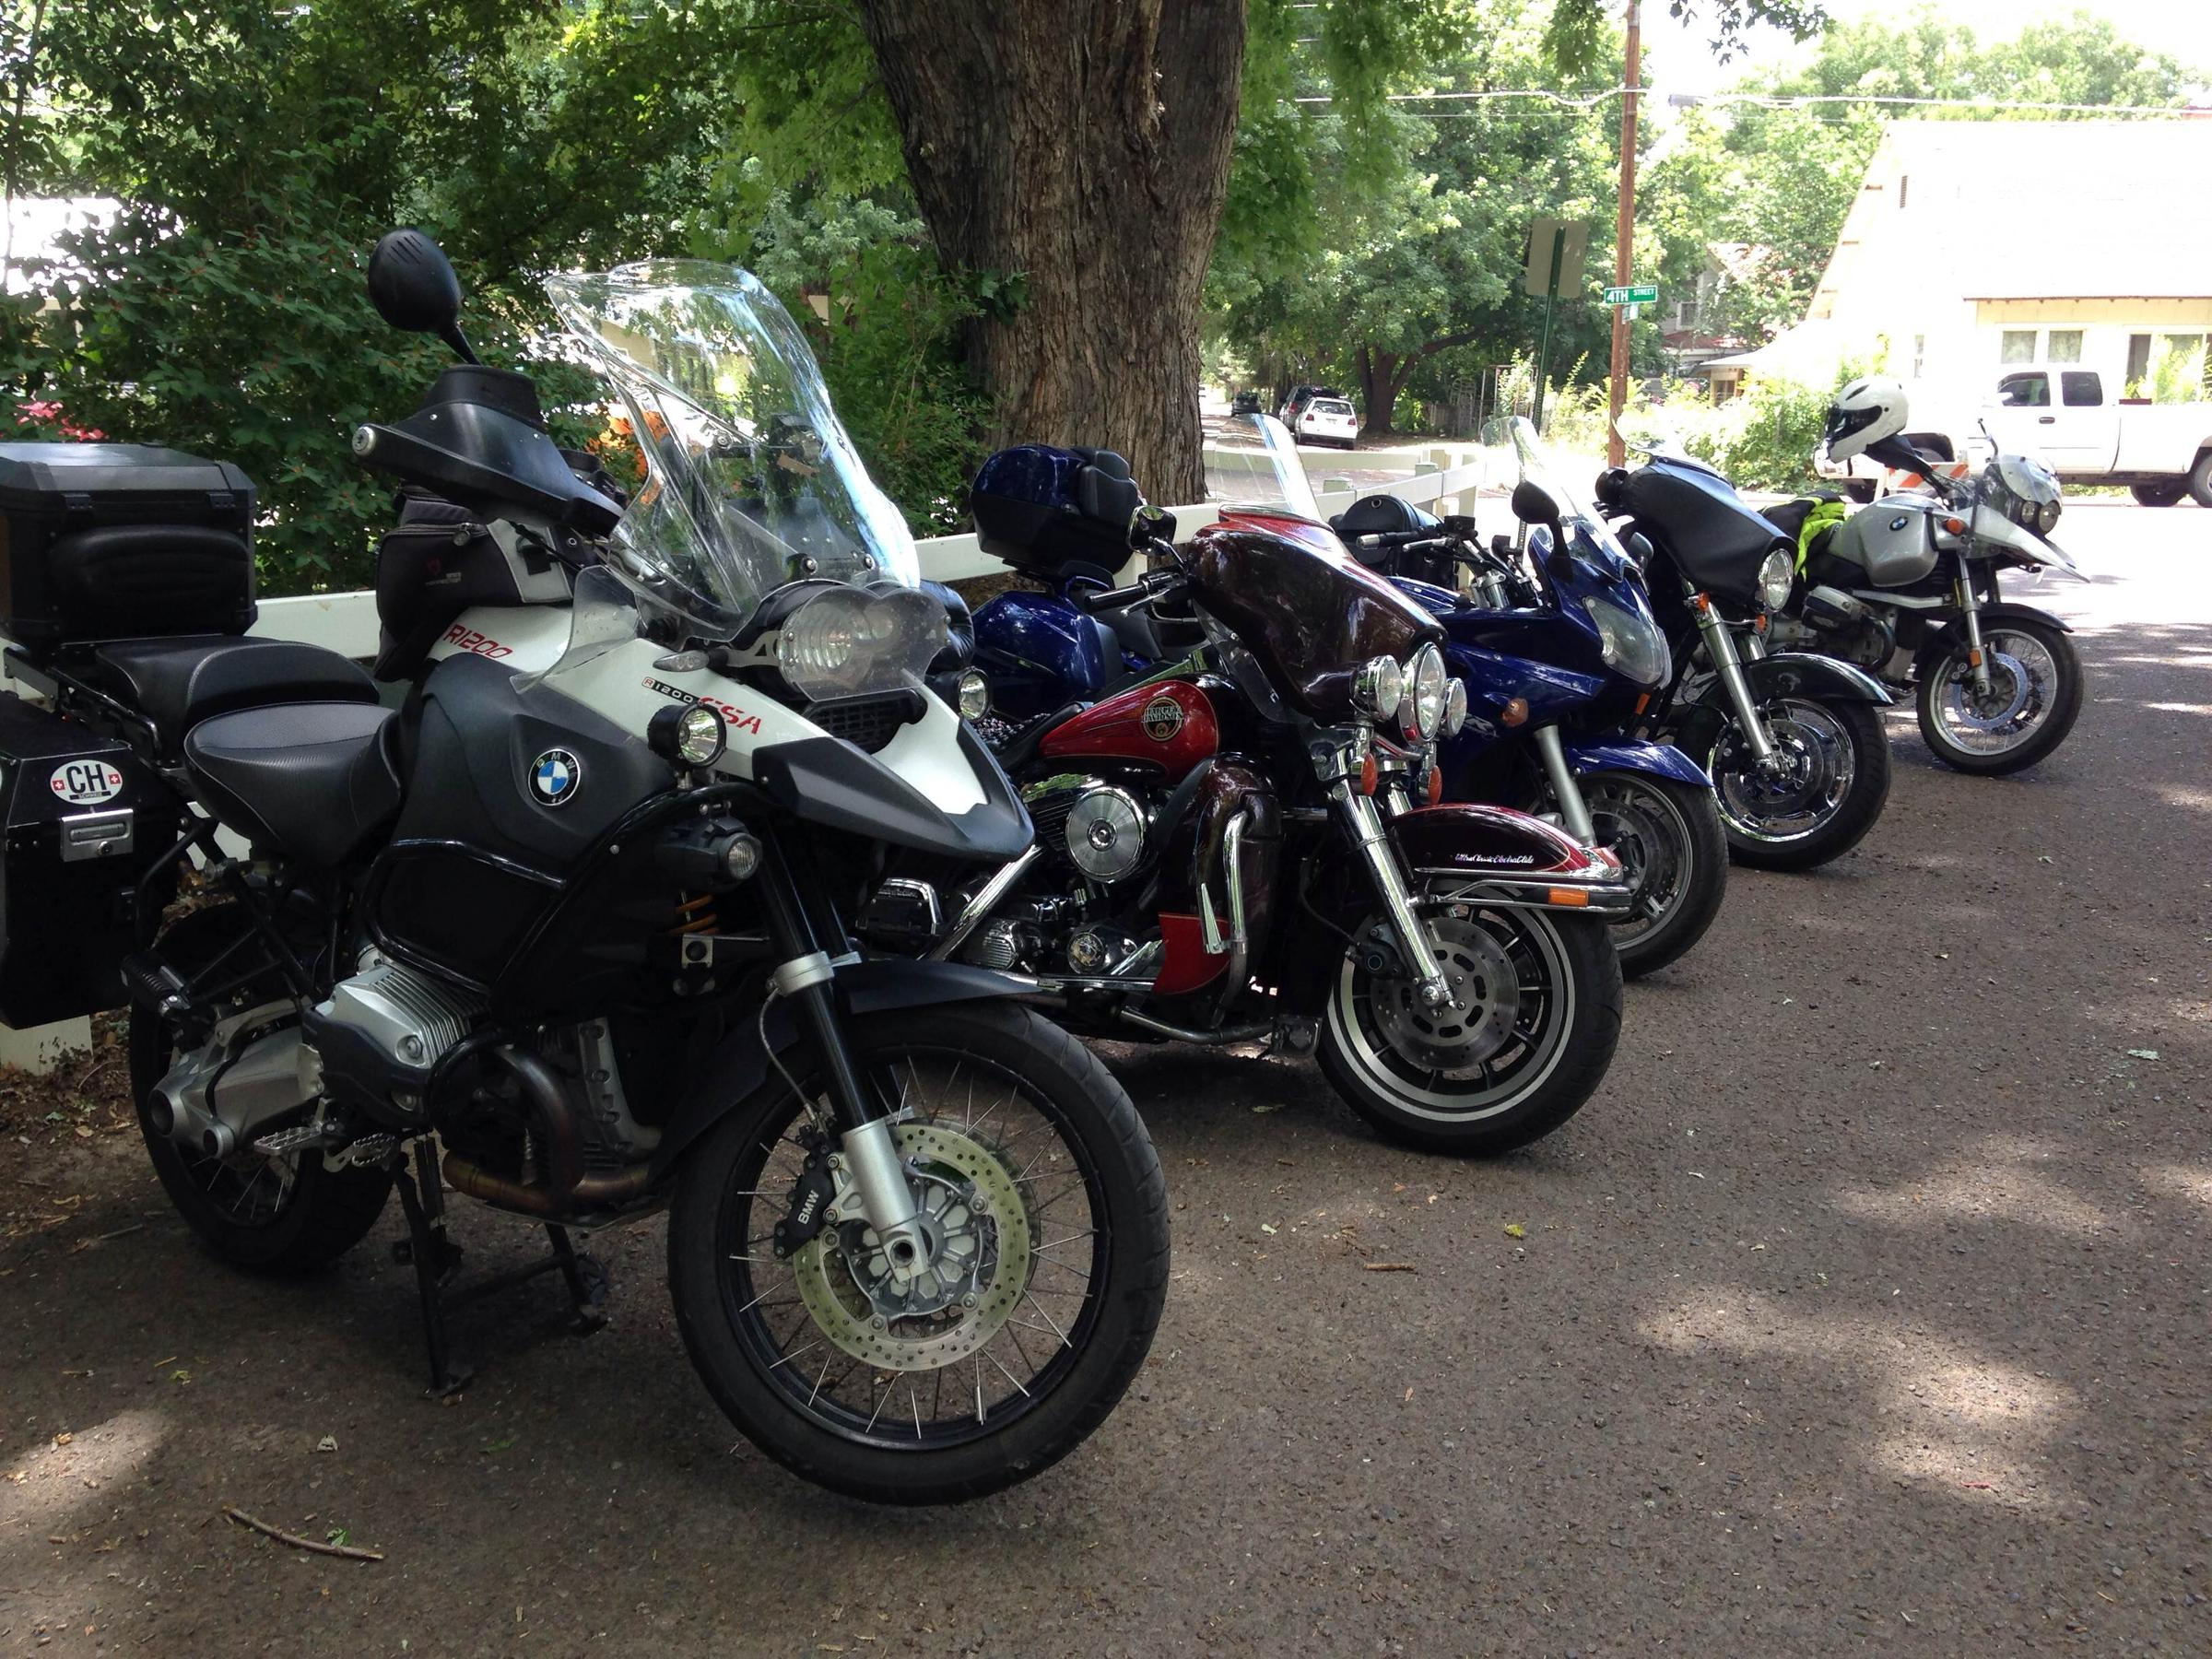 Hundreds Of Bikers Flock To Paonia For BMW Motorcycle Rally